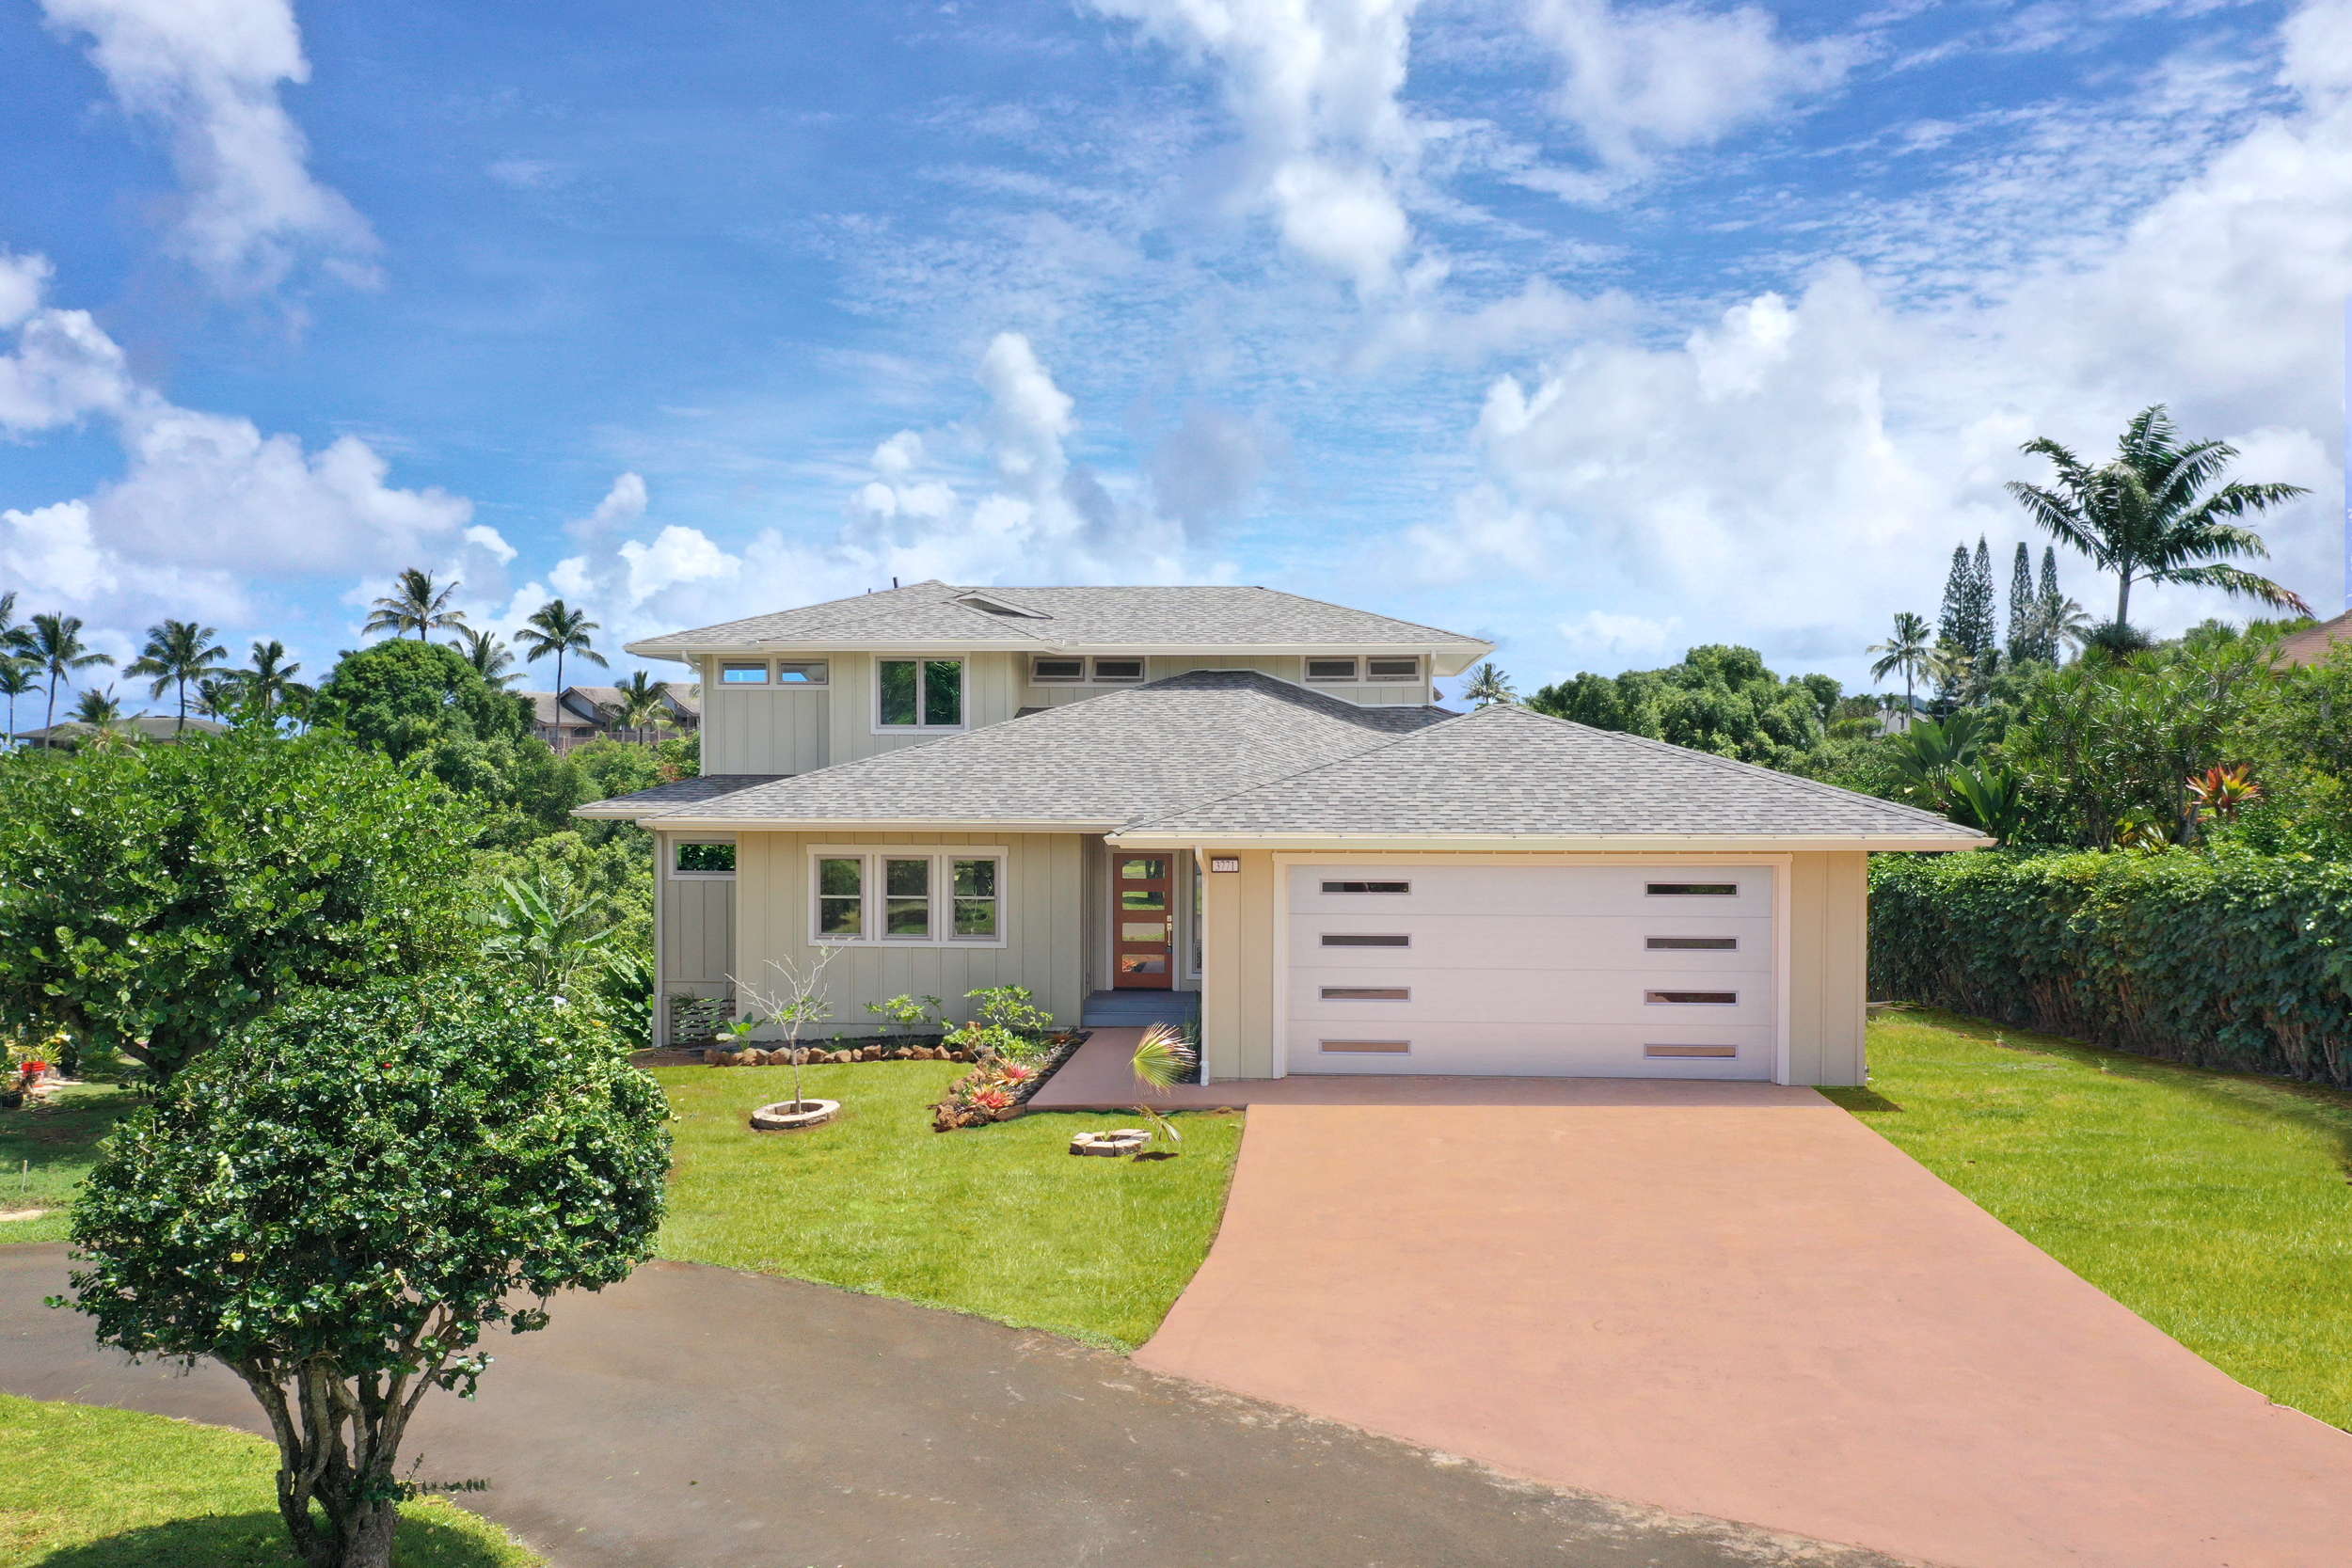 3771 Keli'i Place Princeville Kauai Hawaii SOLD